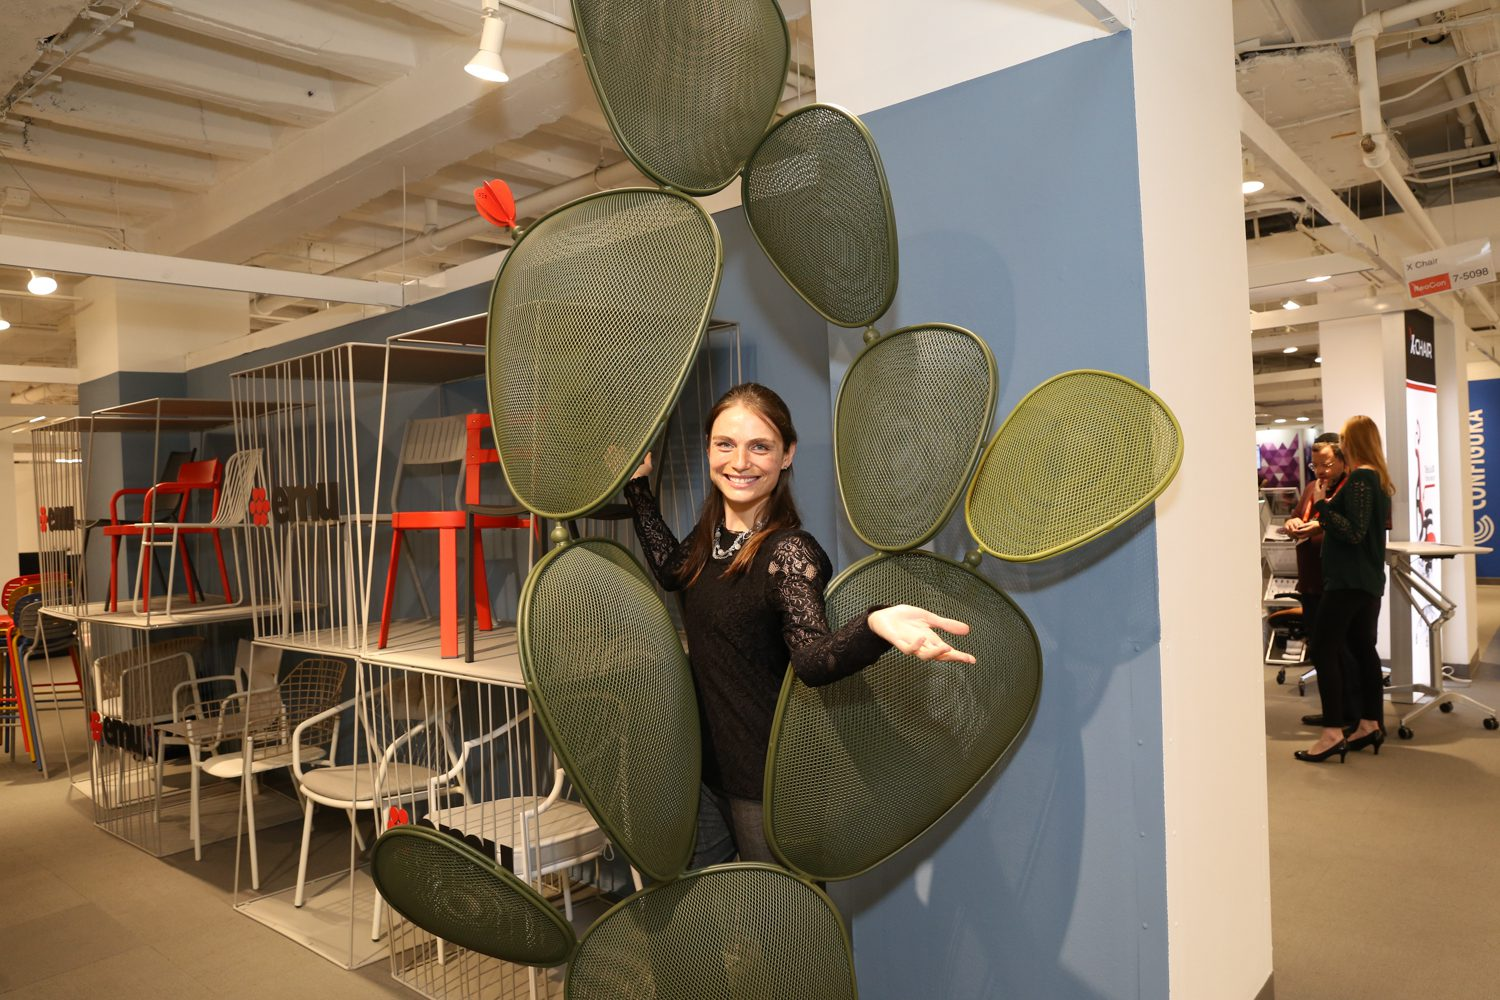 Sara Beets with the Cactus sculpture by Emu Americas.